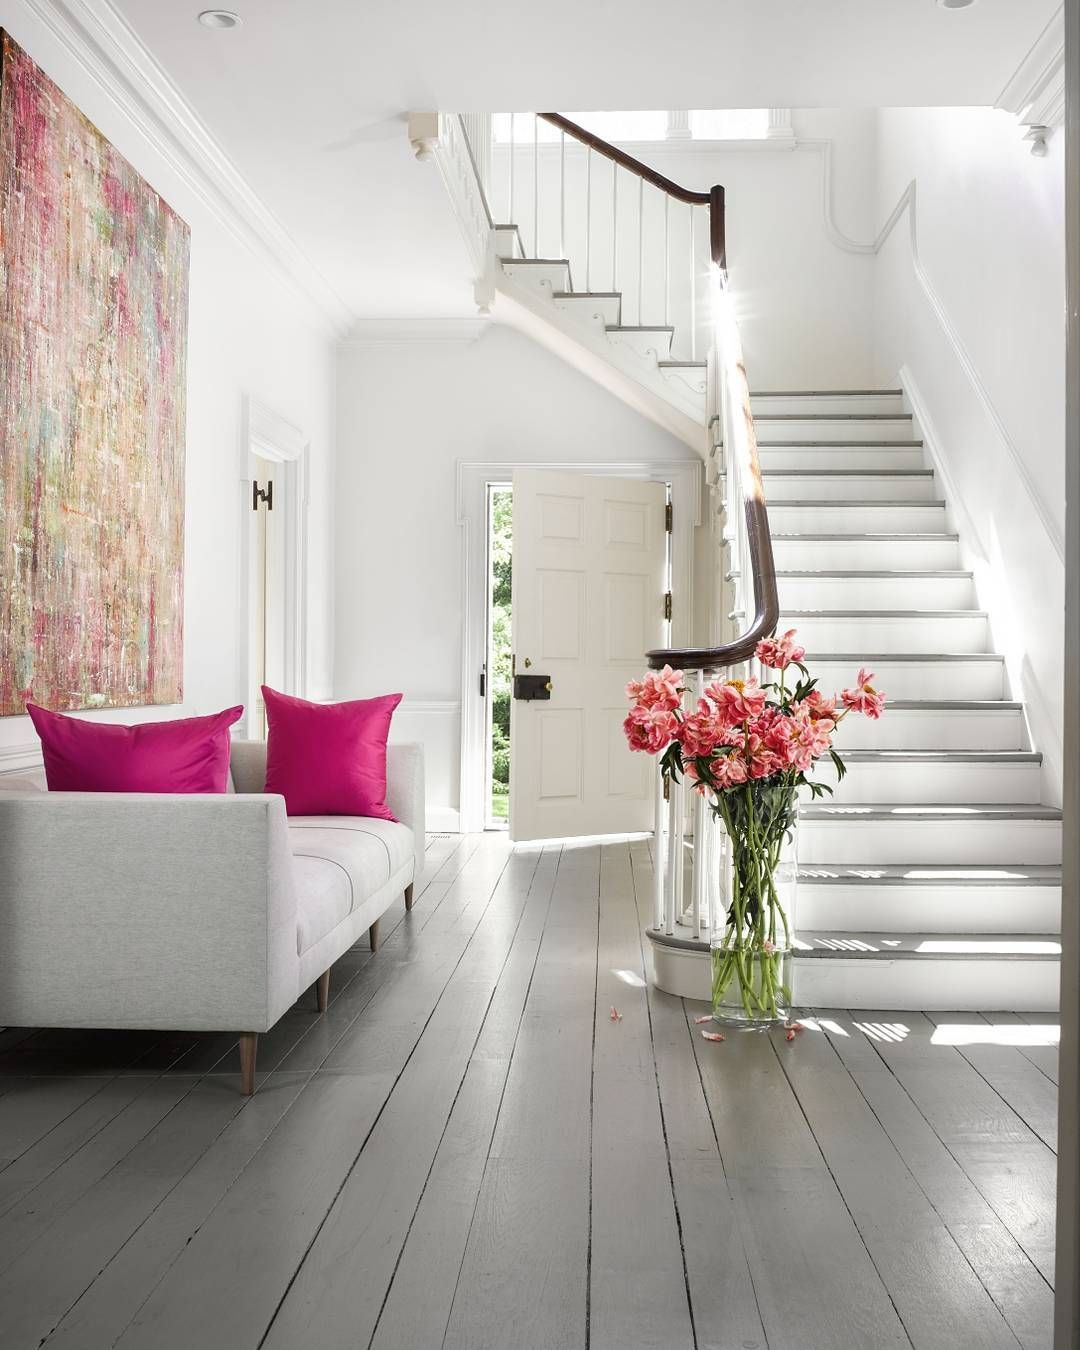 The touch of pink can make any room come alive with vibrancy. | Photo: Mali Azima; Design: Kay Douglass